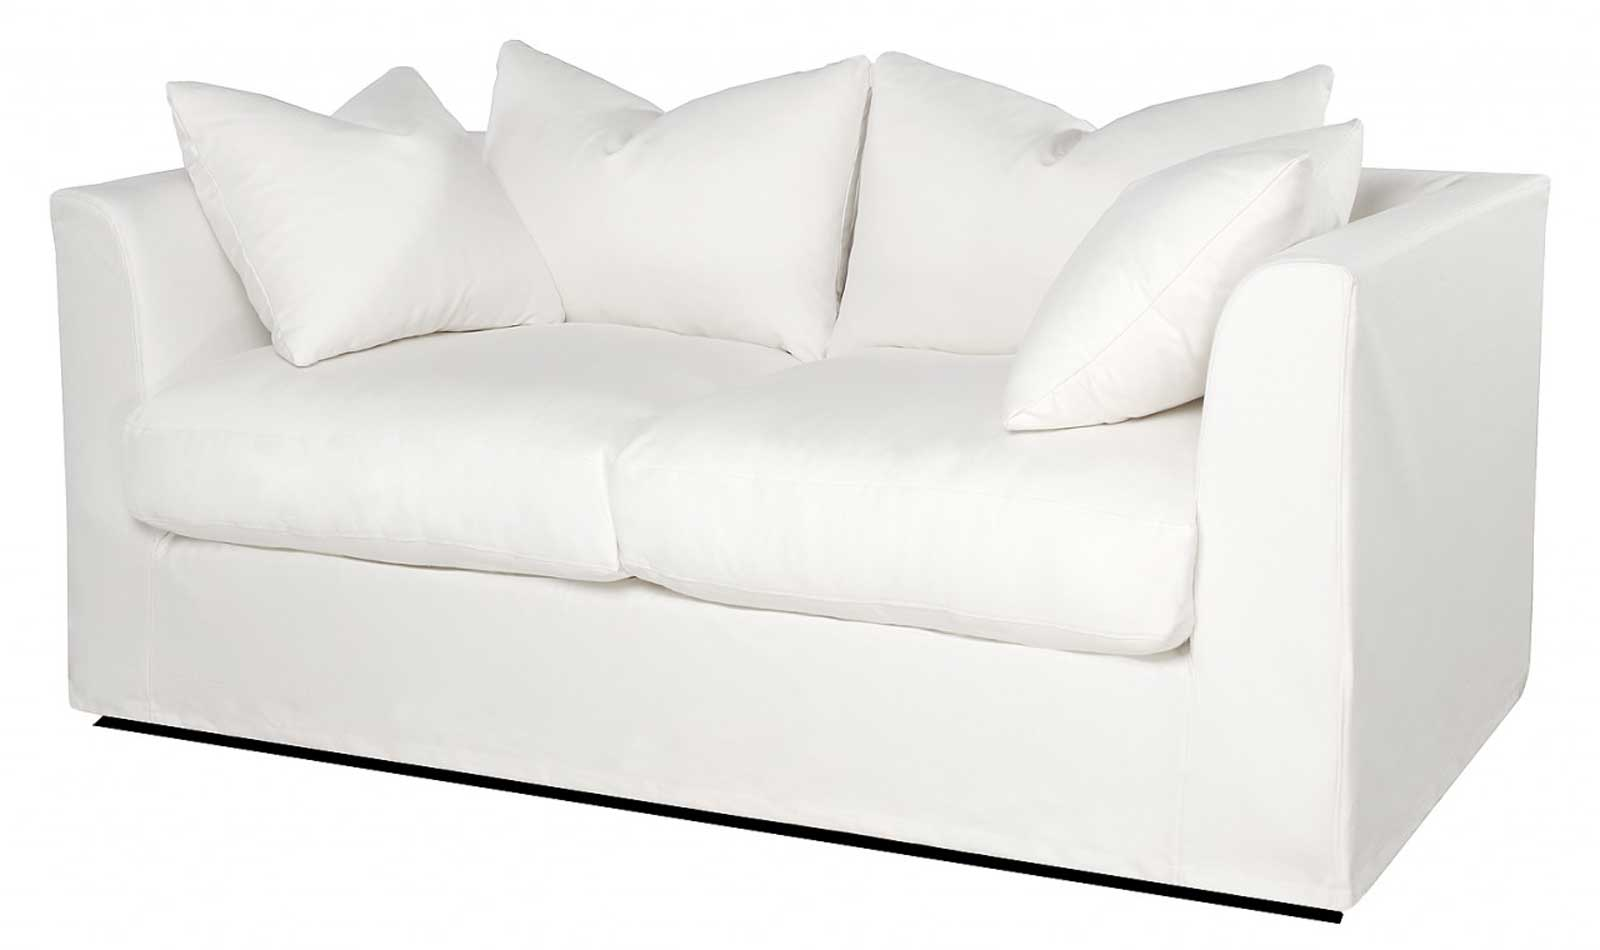 Sofas loveseats Sofa sleeper loveseat